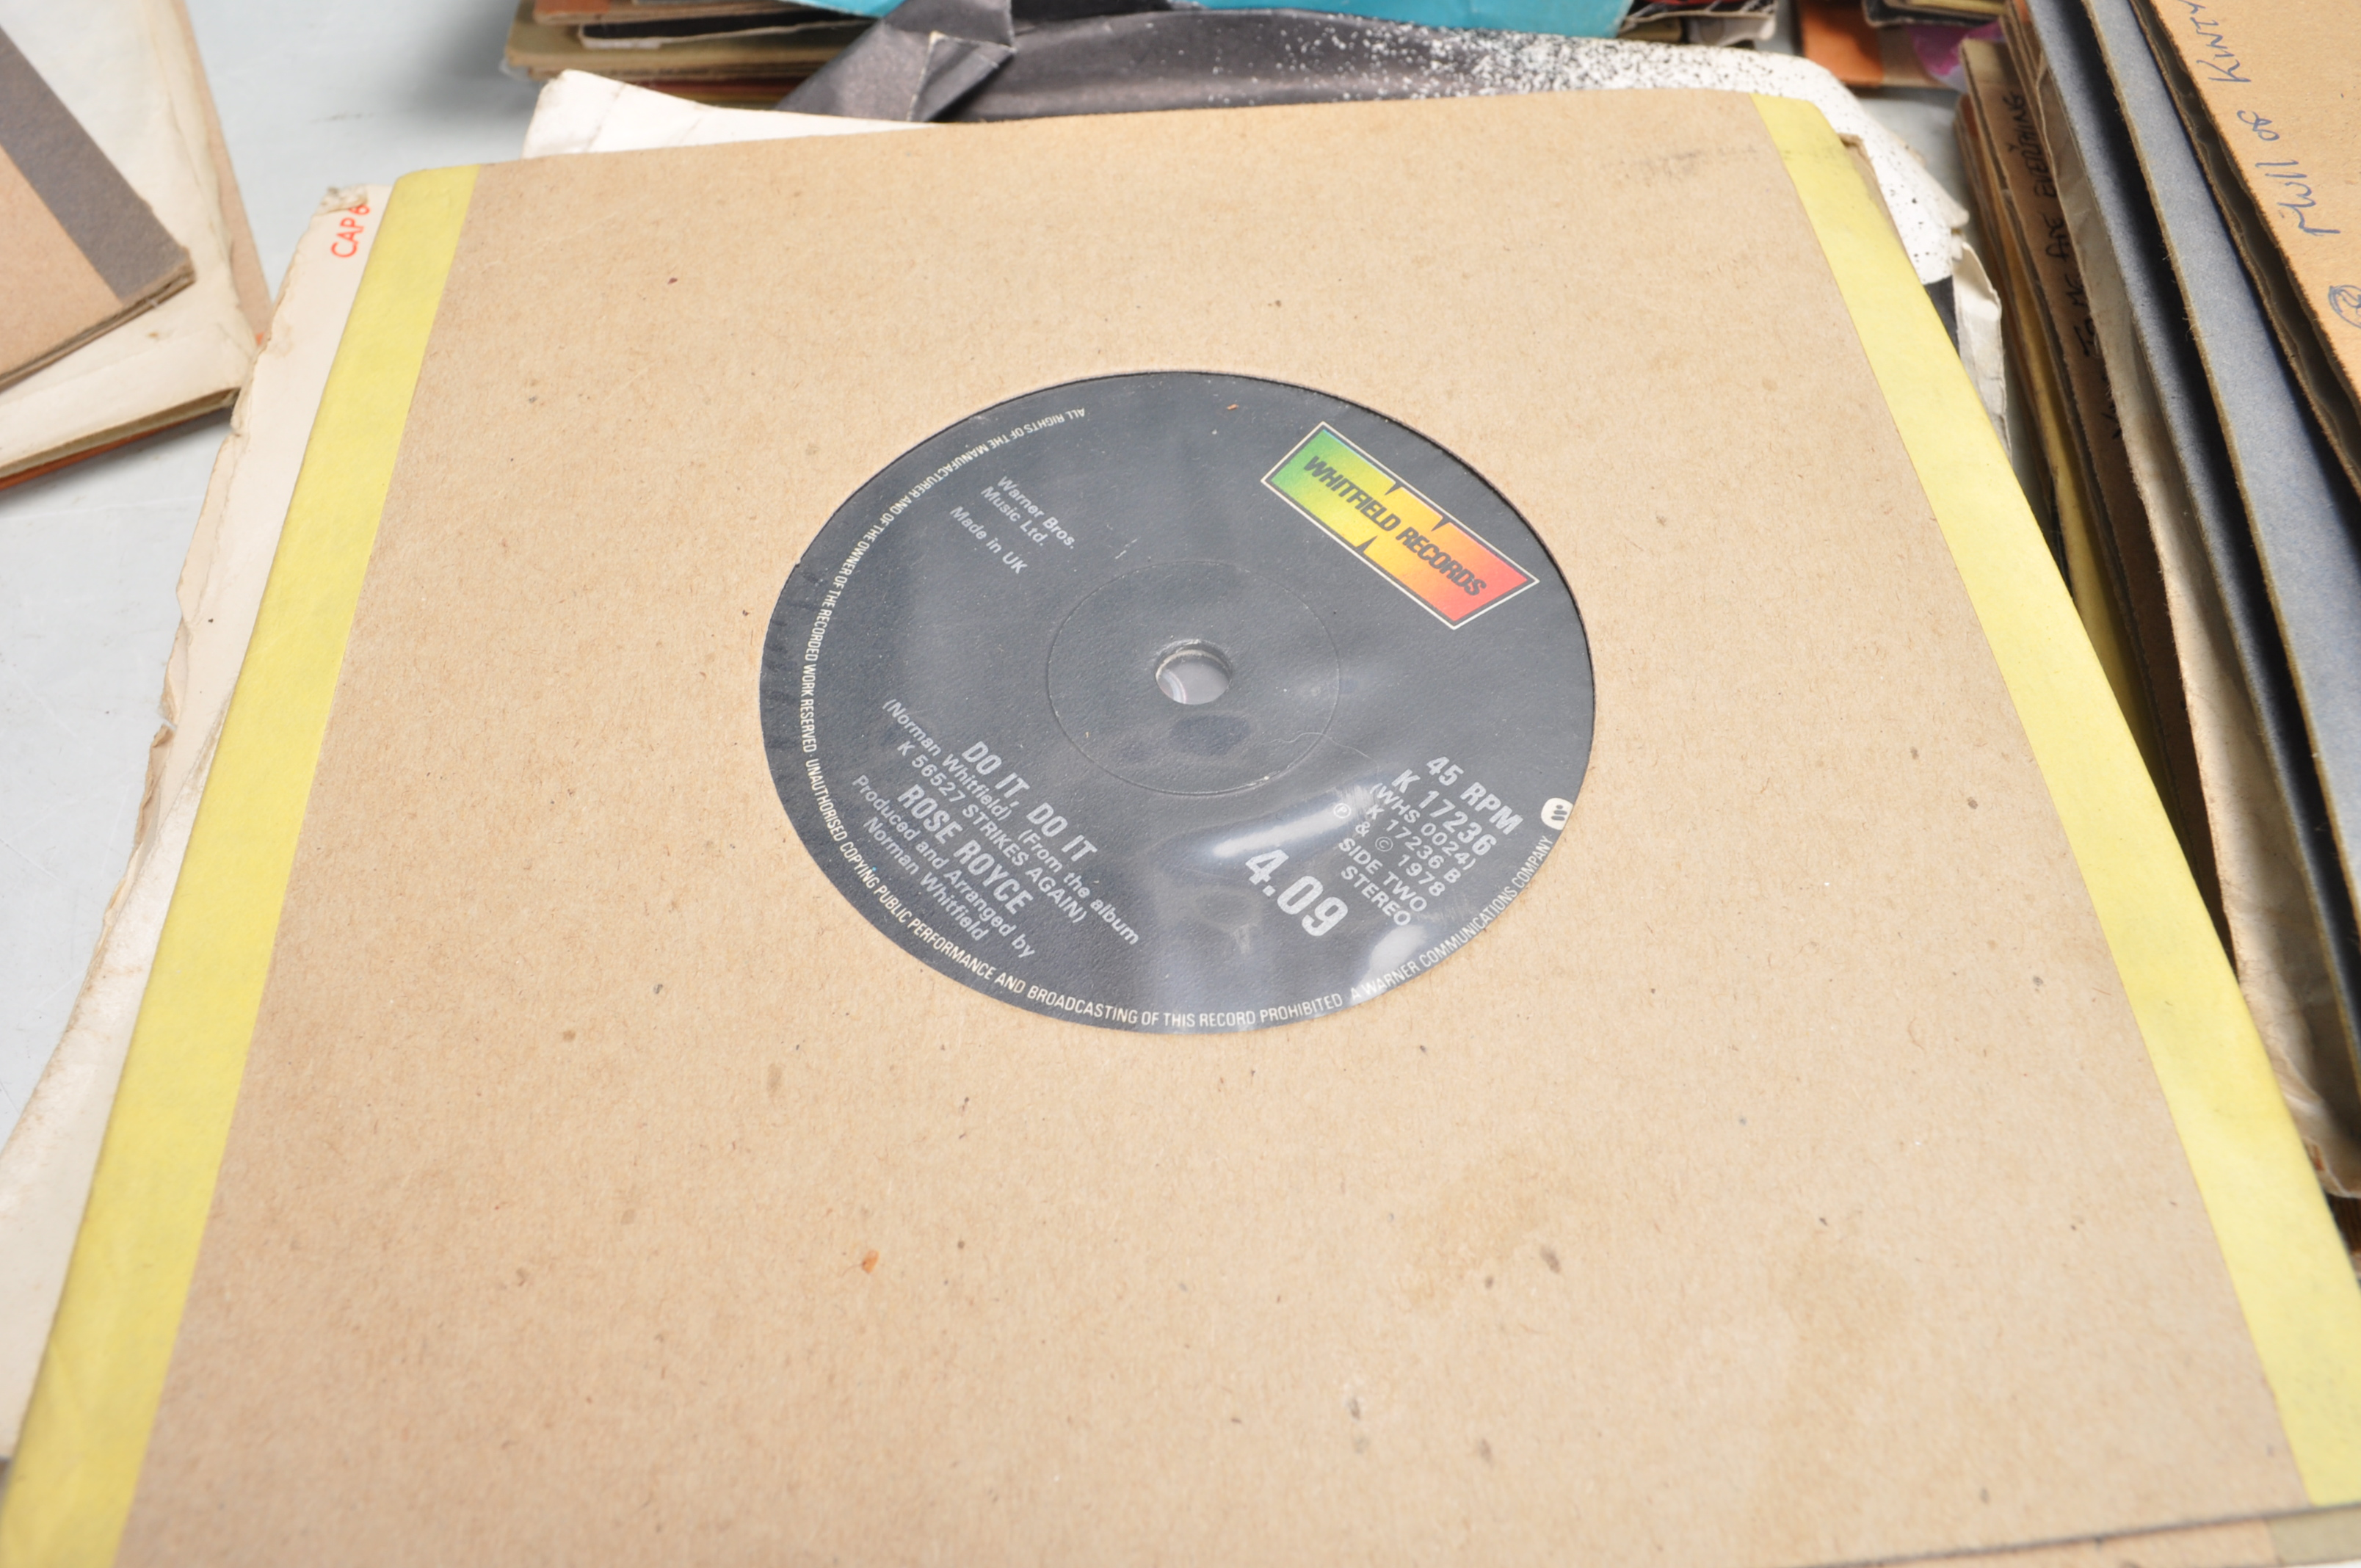 """LARGE COLLECTION OF VINTAGE VINYL 45RPM 7"""" SINGLES - Image 5 of 9"""